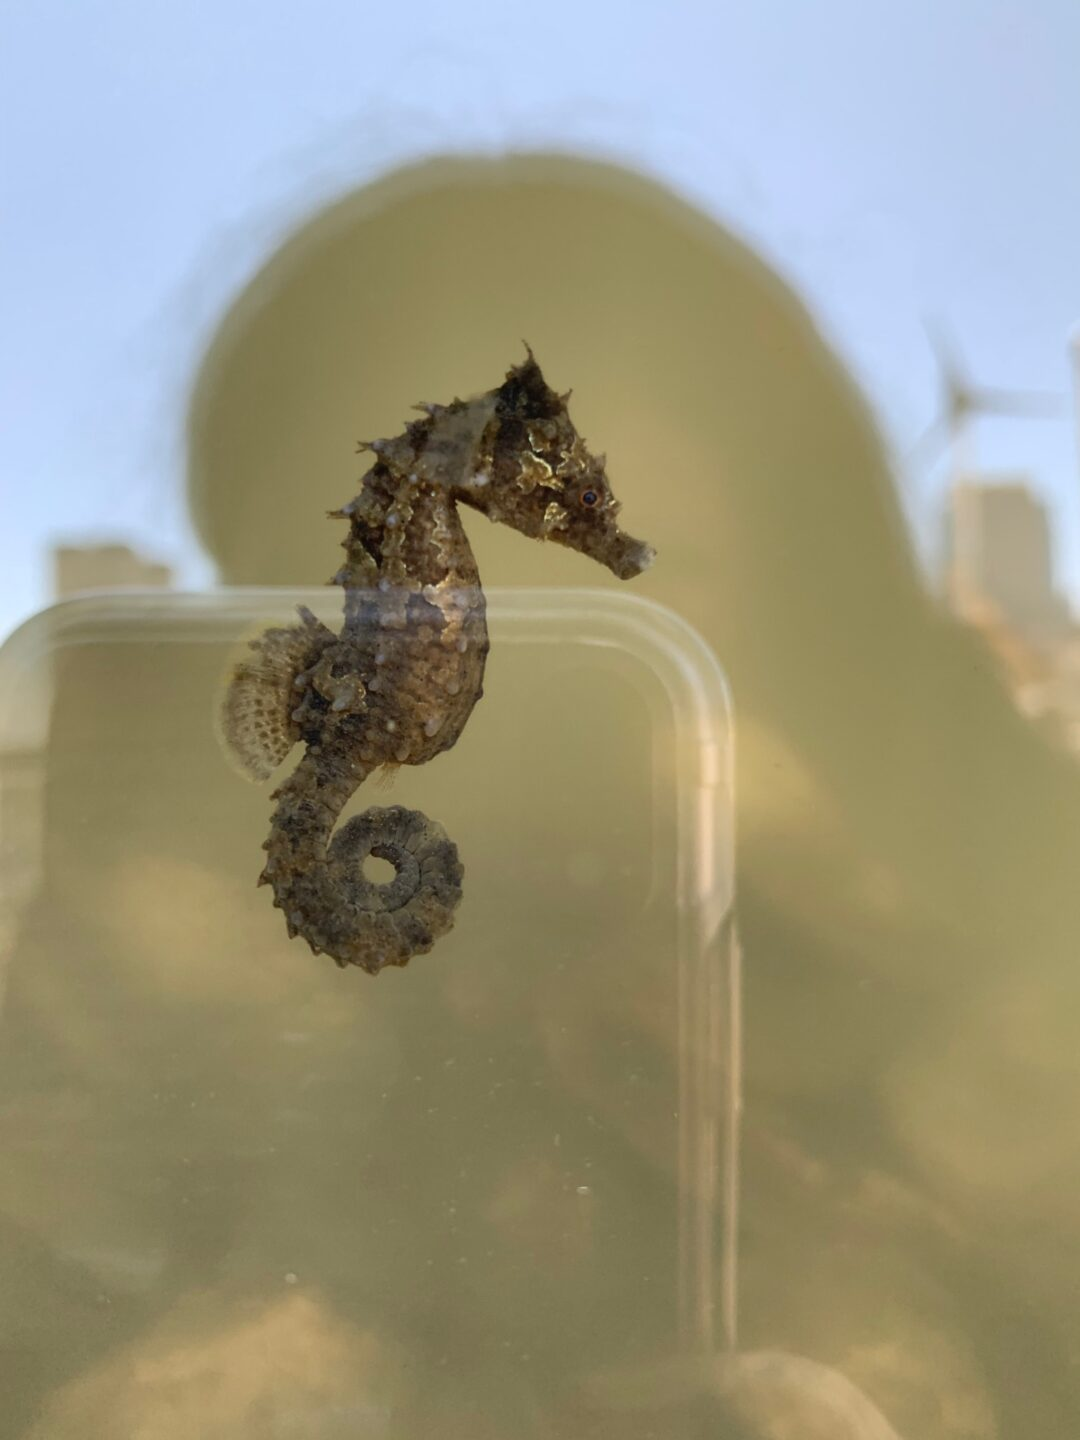 A close up view of the lined seahorse with its tail curled up